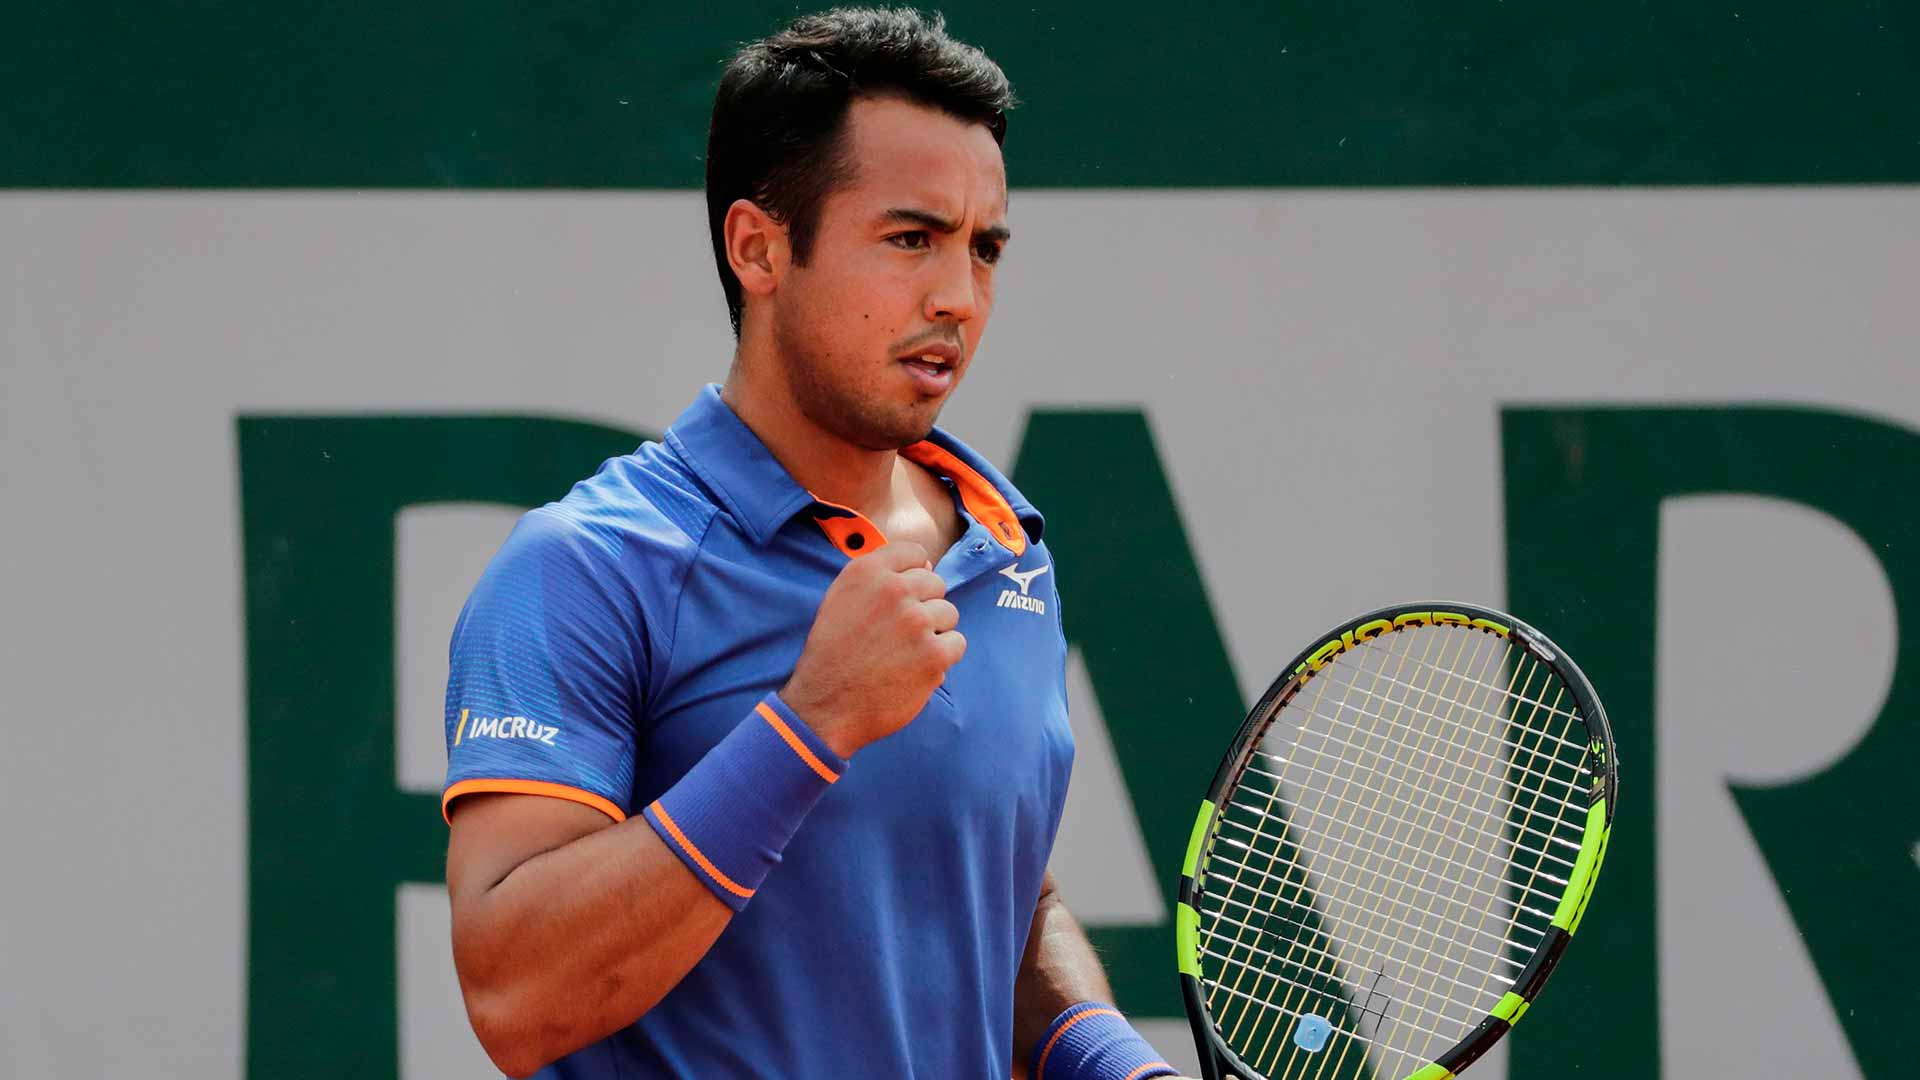 Hugo Dellien wins on Sunday at Roland Garros